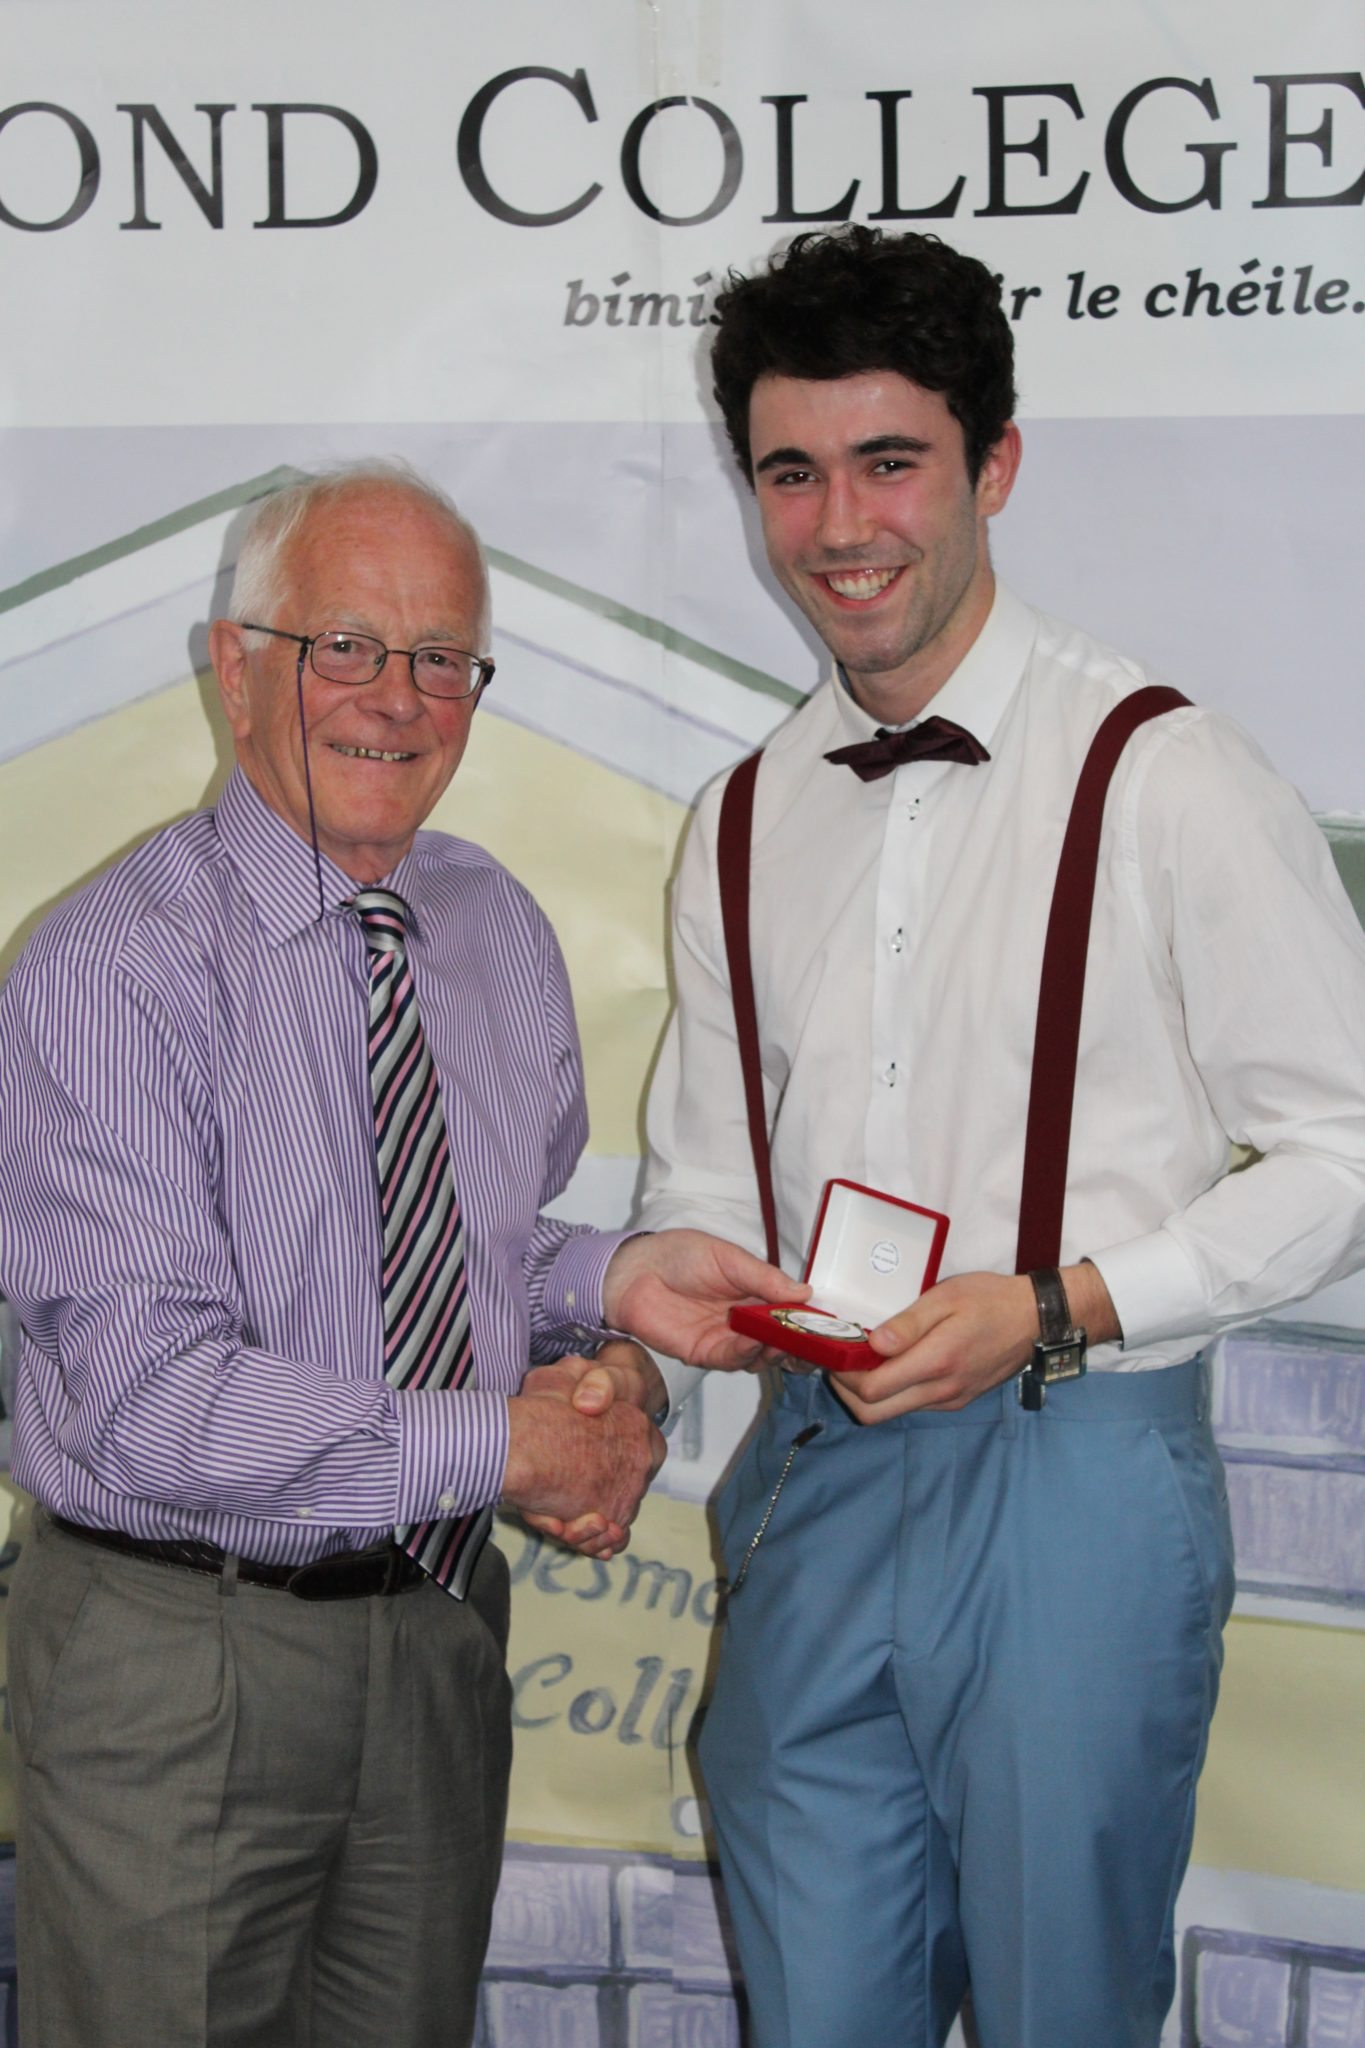 Desmond College Leaving Certificate Graduation Awards 2015: Sports Awards: Cormac Long with Mike Nash